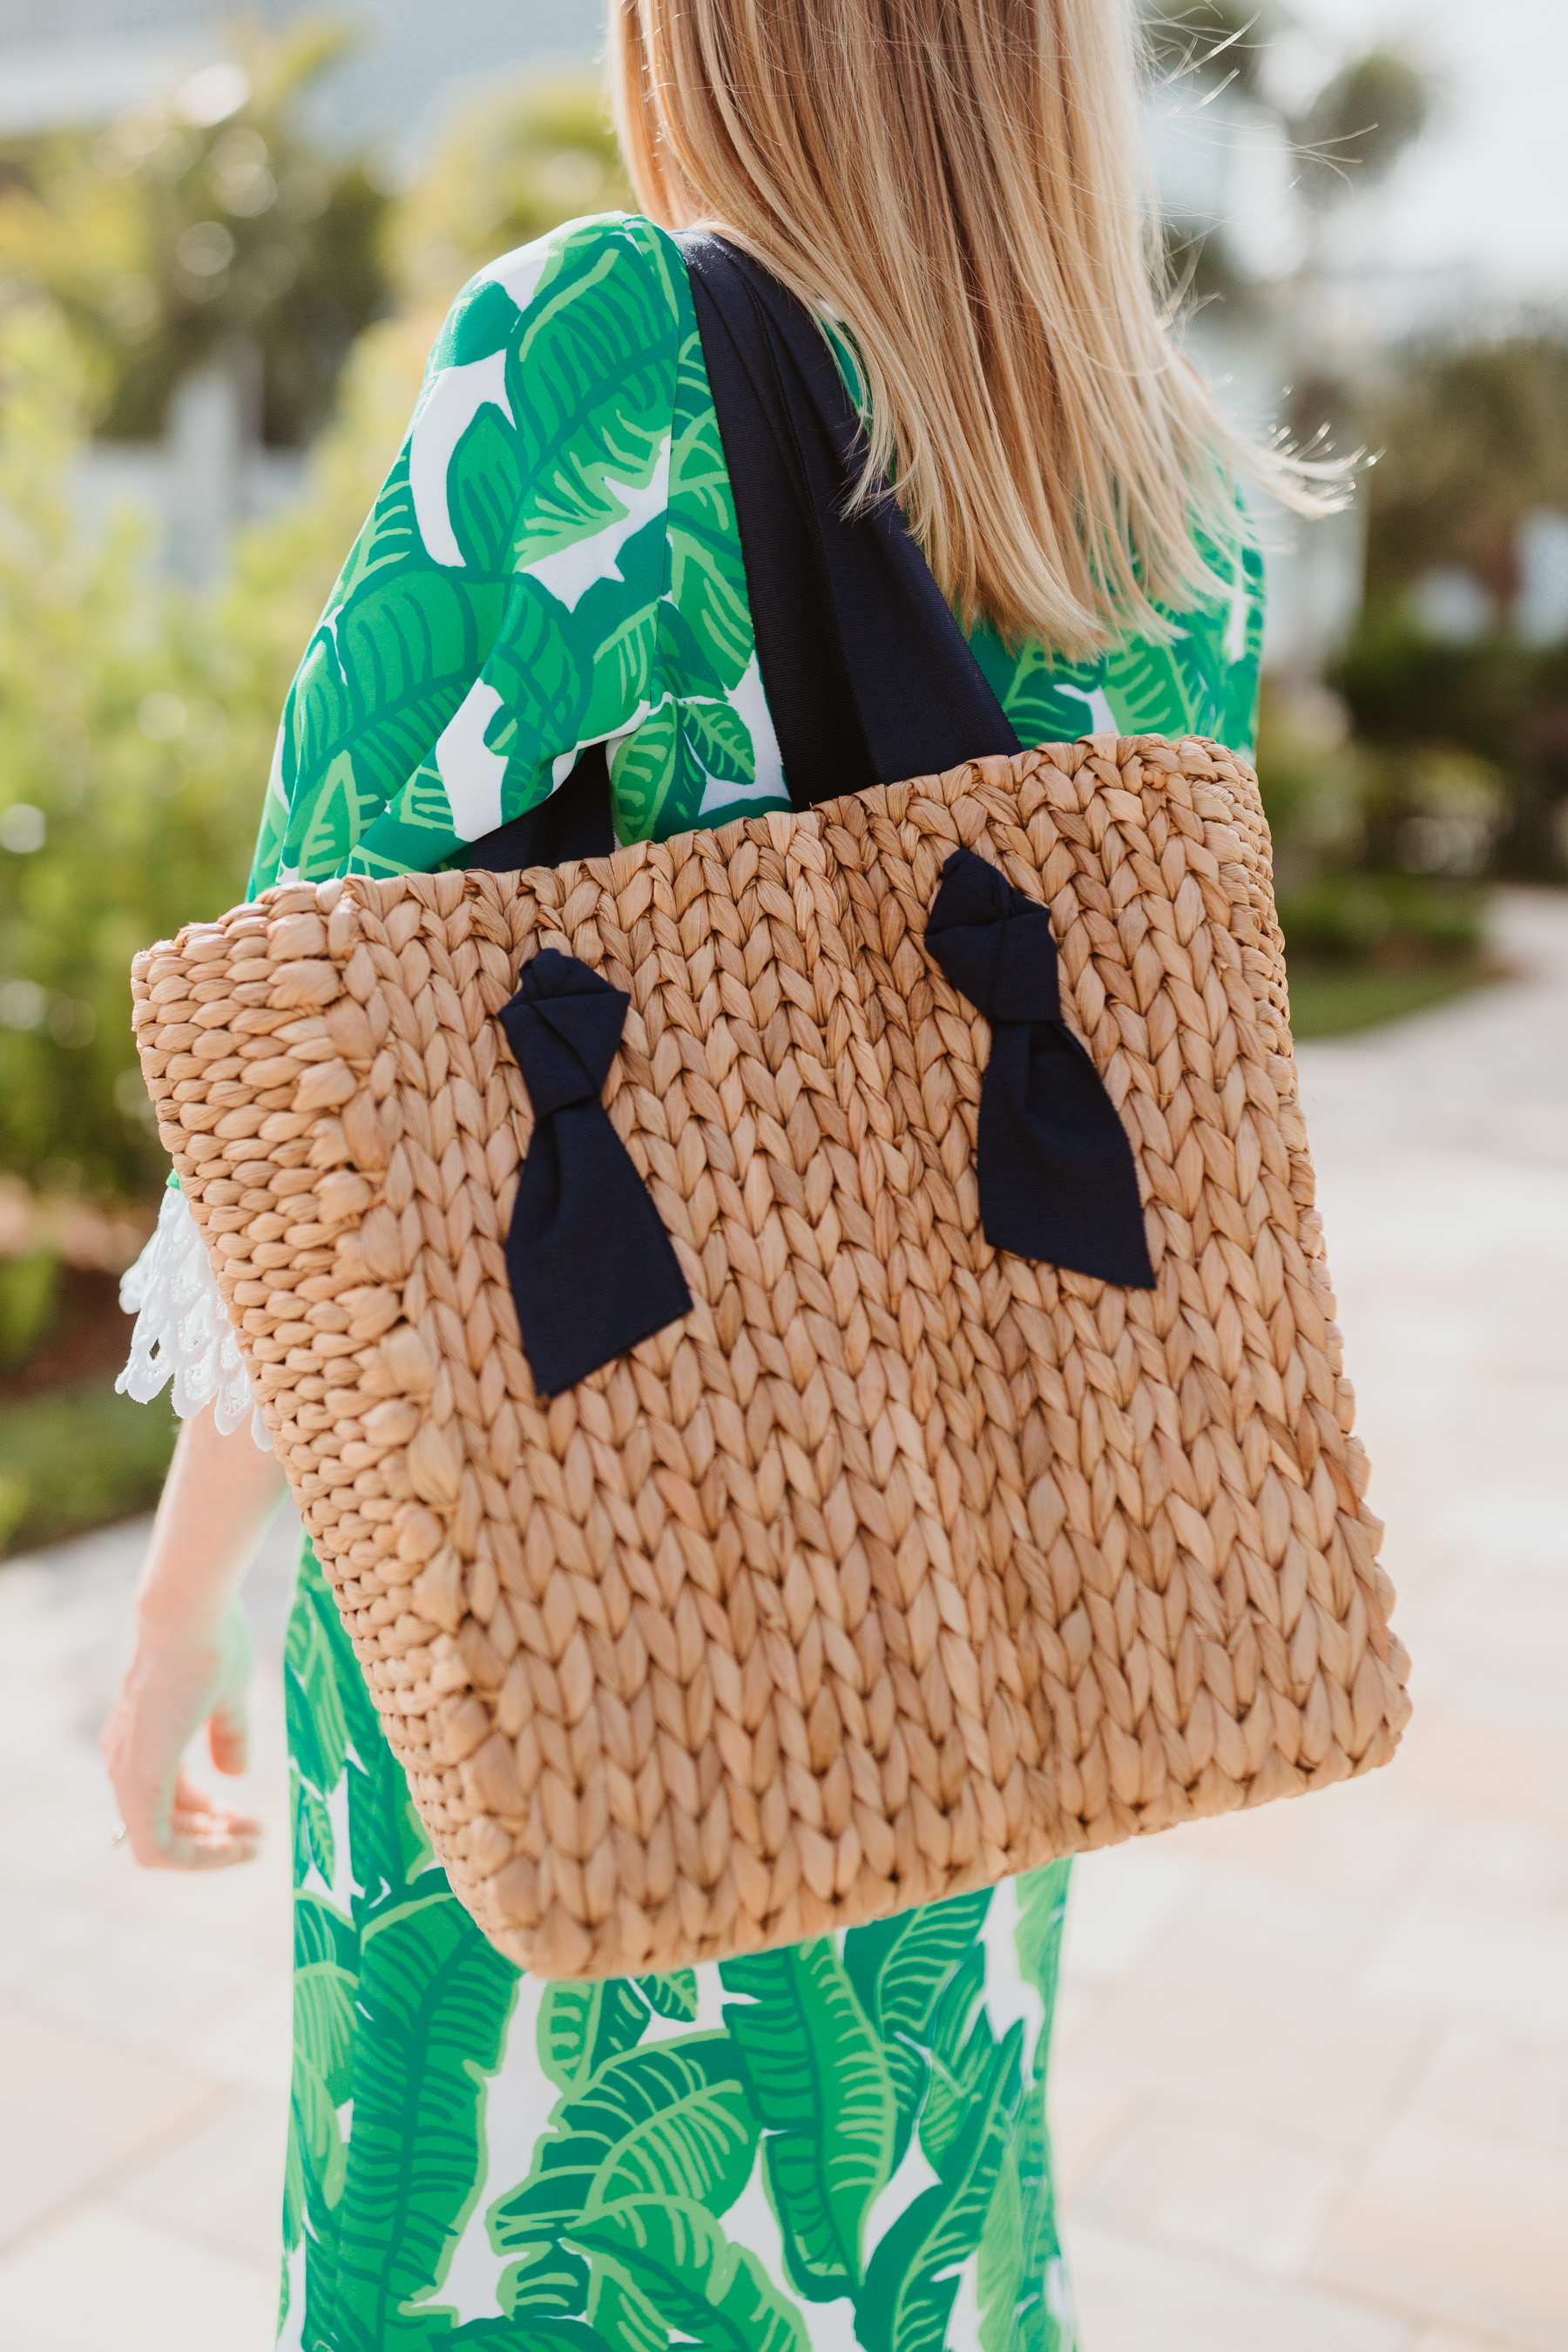 Kelly's outfit: Sail to Sable Banana Leaf Palm Dress / Pamela Munson Woven Tote